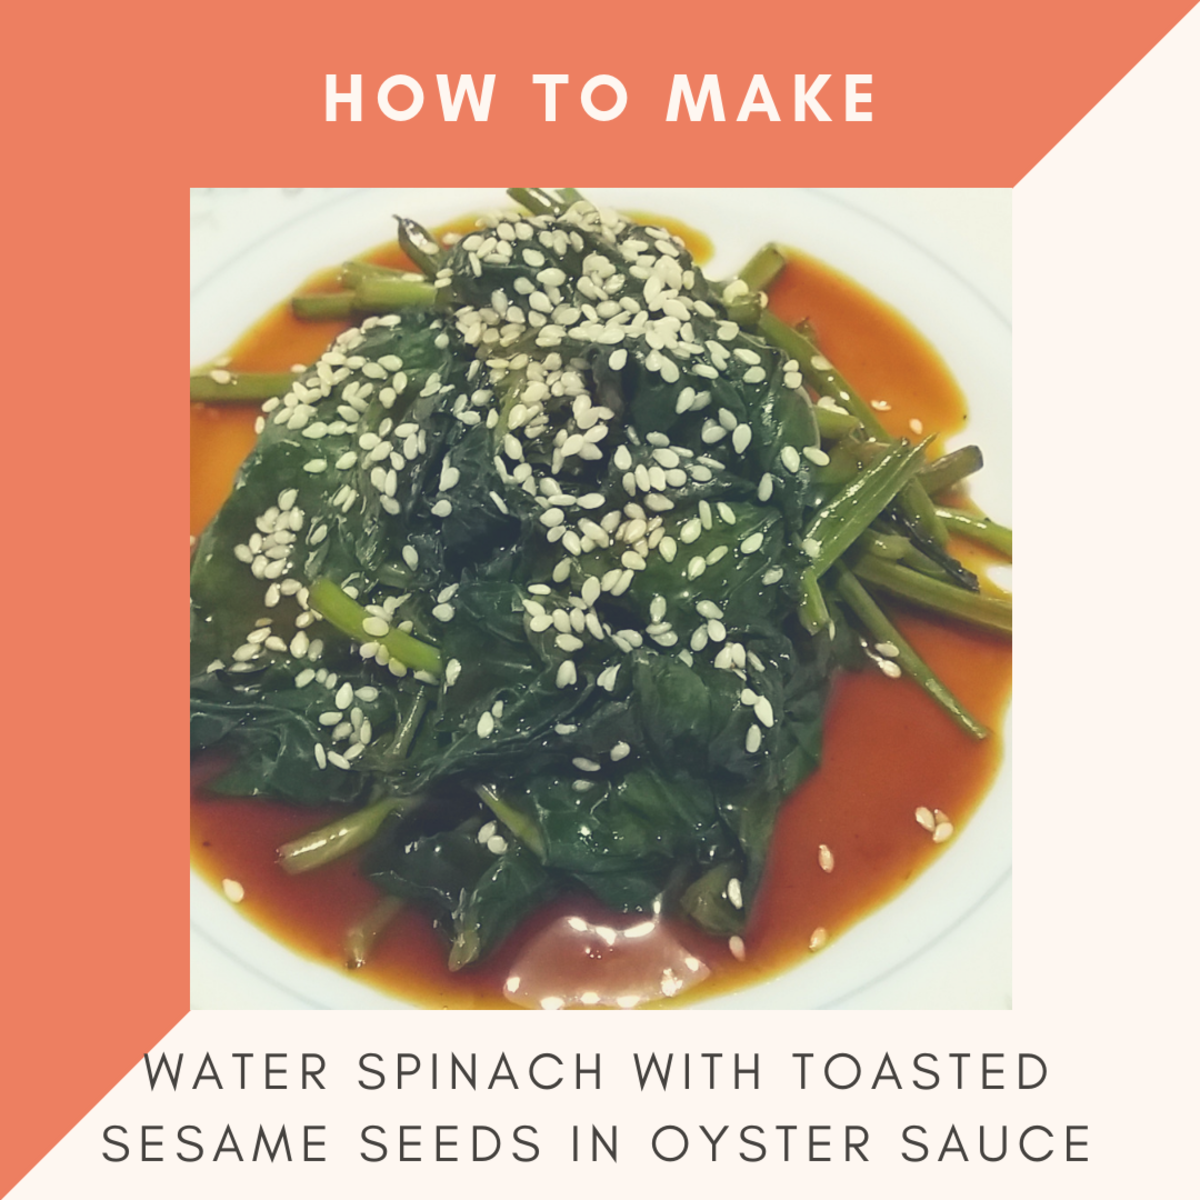 Water Spinach With Toasted Sesame Seeds in Oyster Sauce